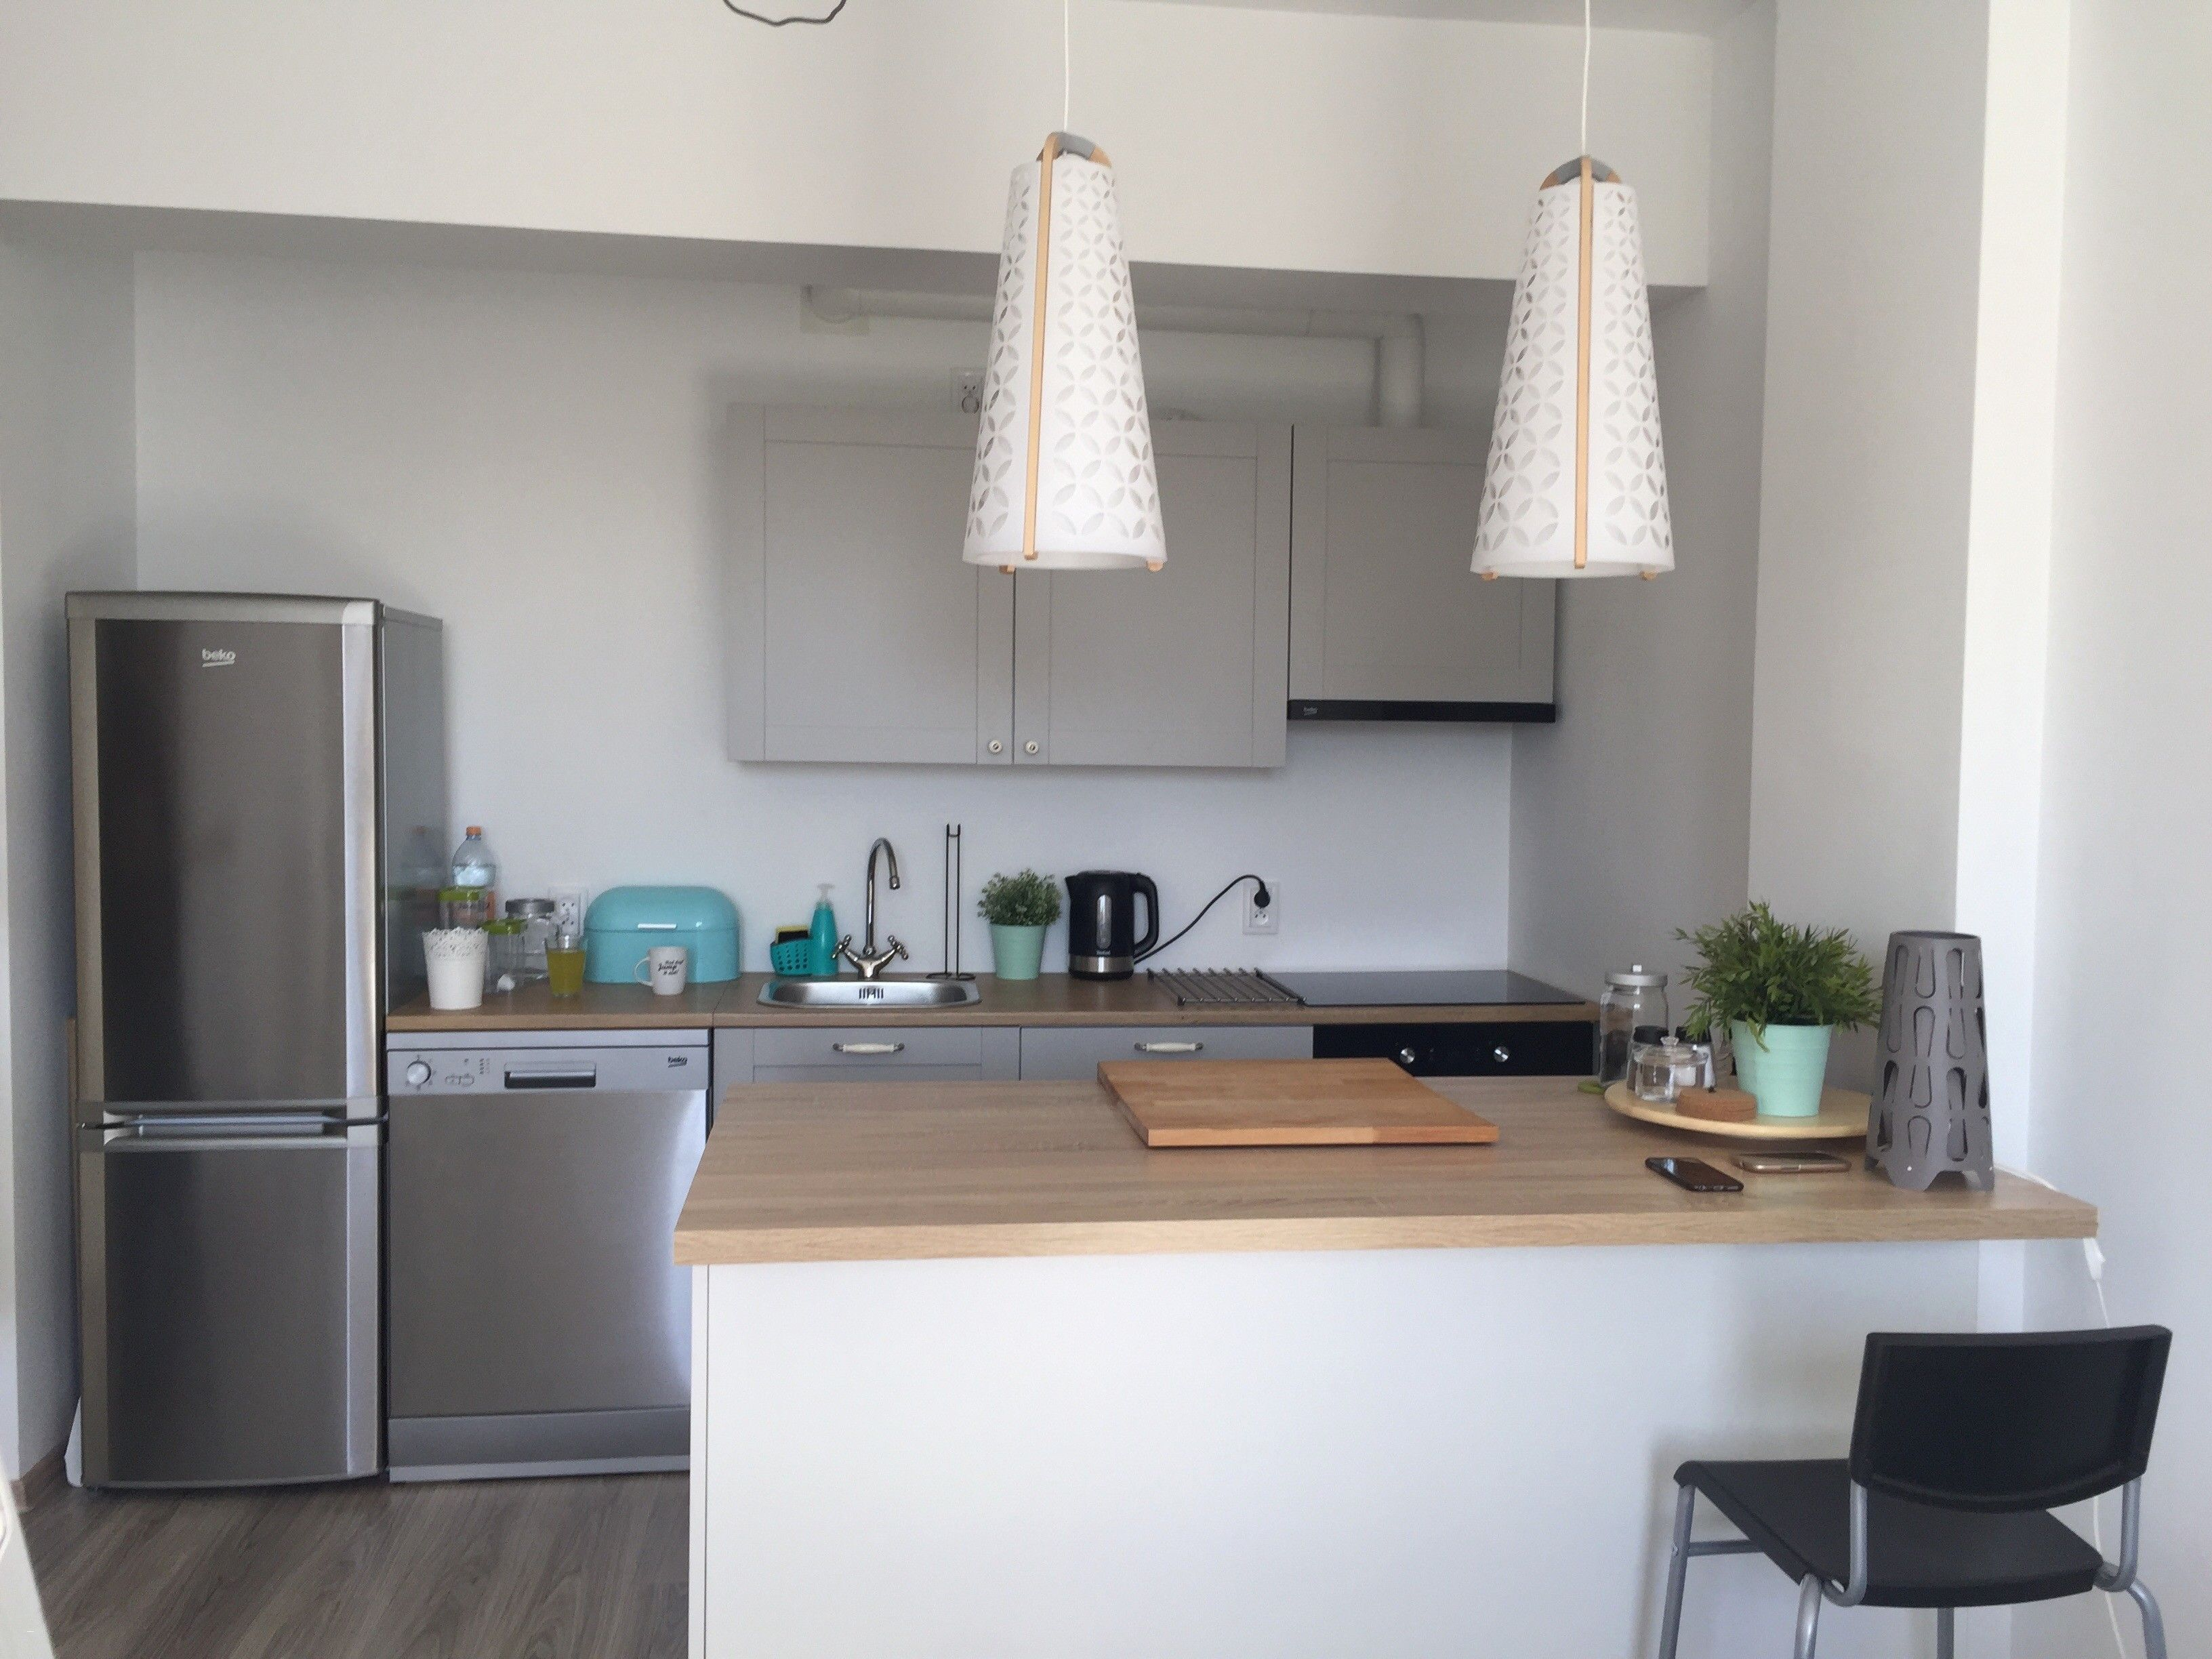 Lovely Ikea Kitchen Cabinets Knoxhult Amazing In